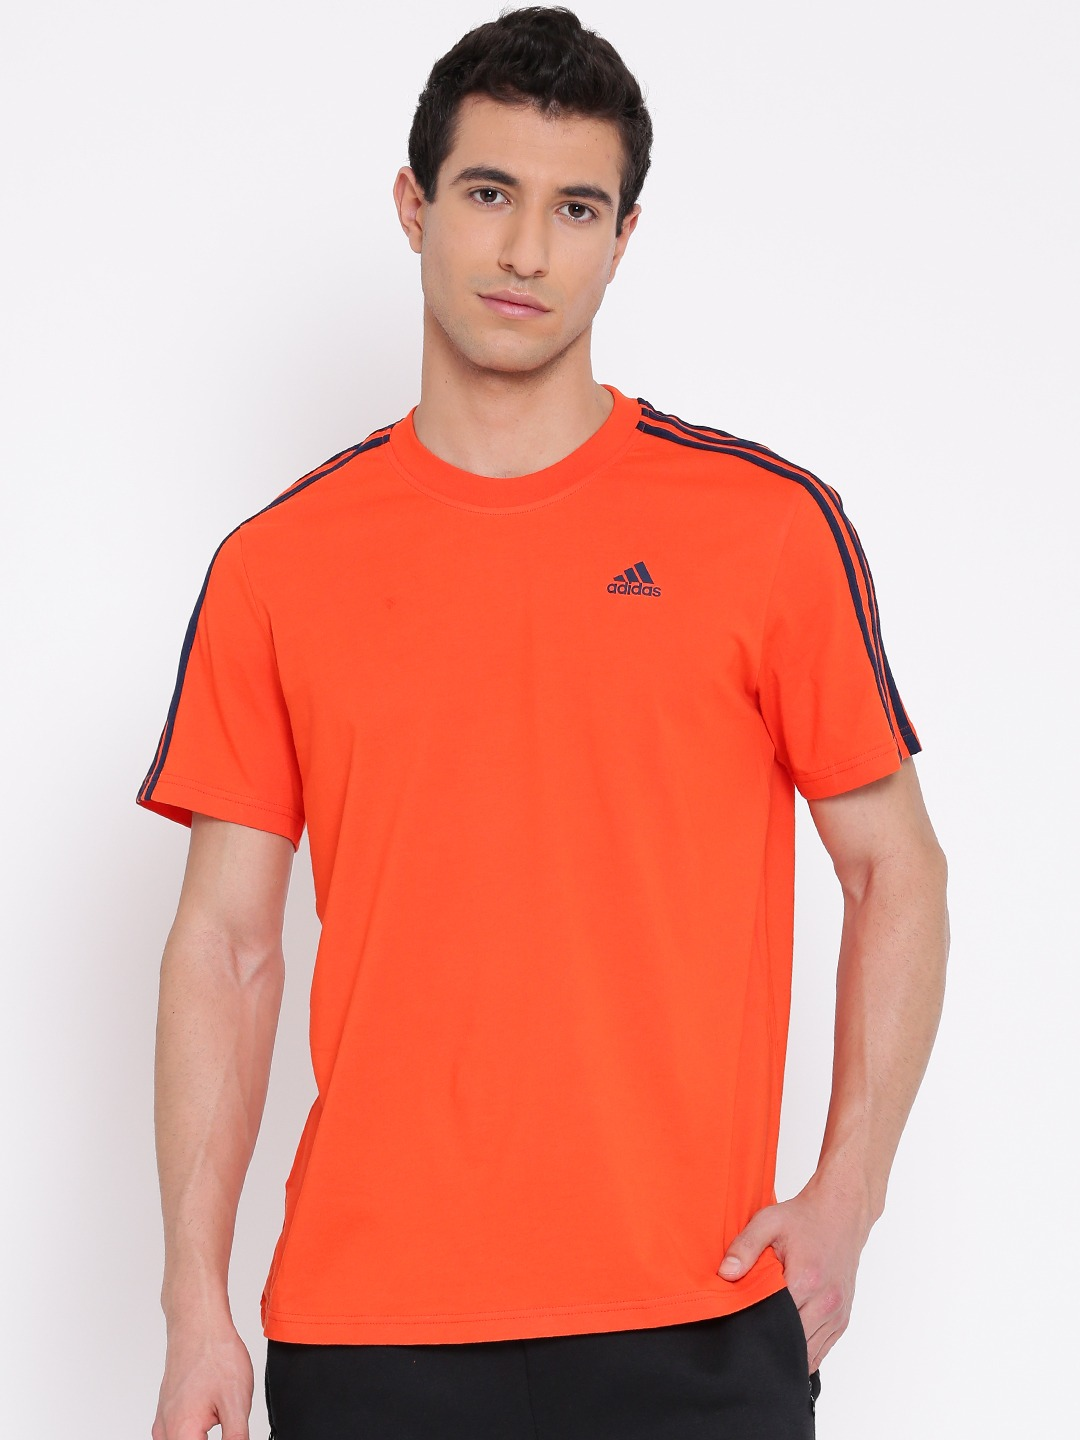 Design your own t shirt india cash on delivery - Adidas Men Orange Ess 3s Solid Round Neck T Shirt